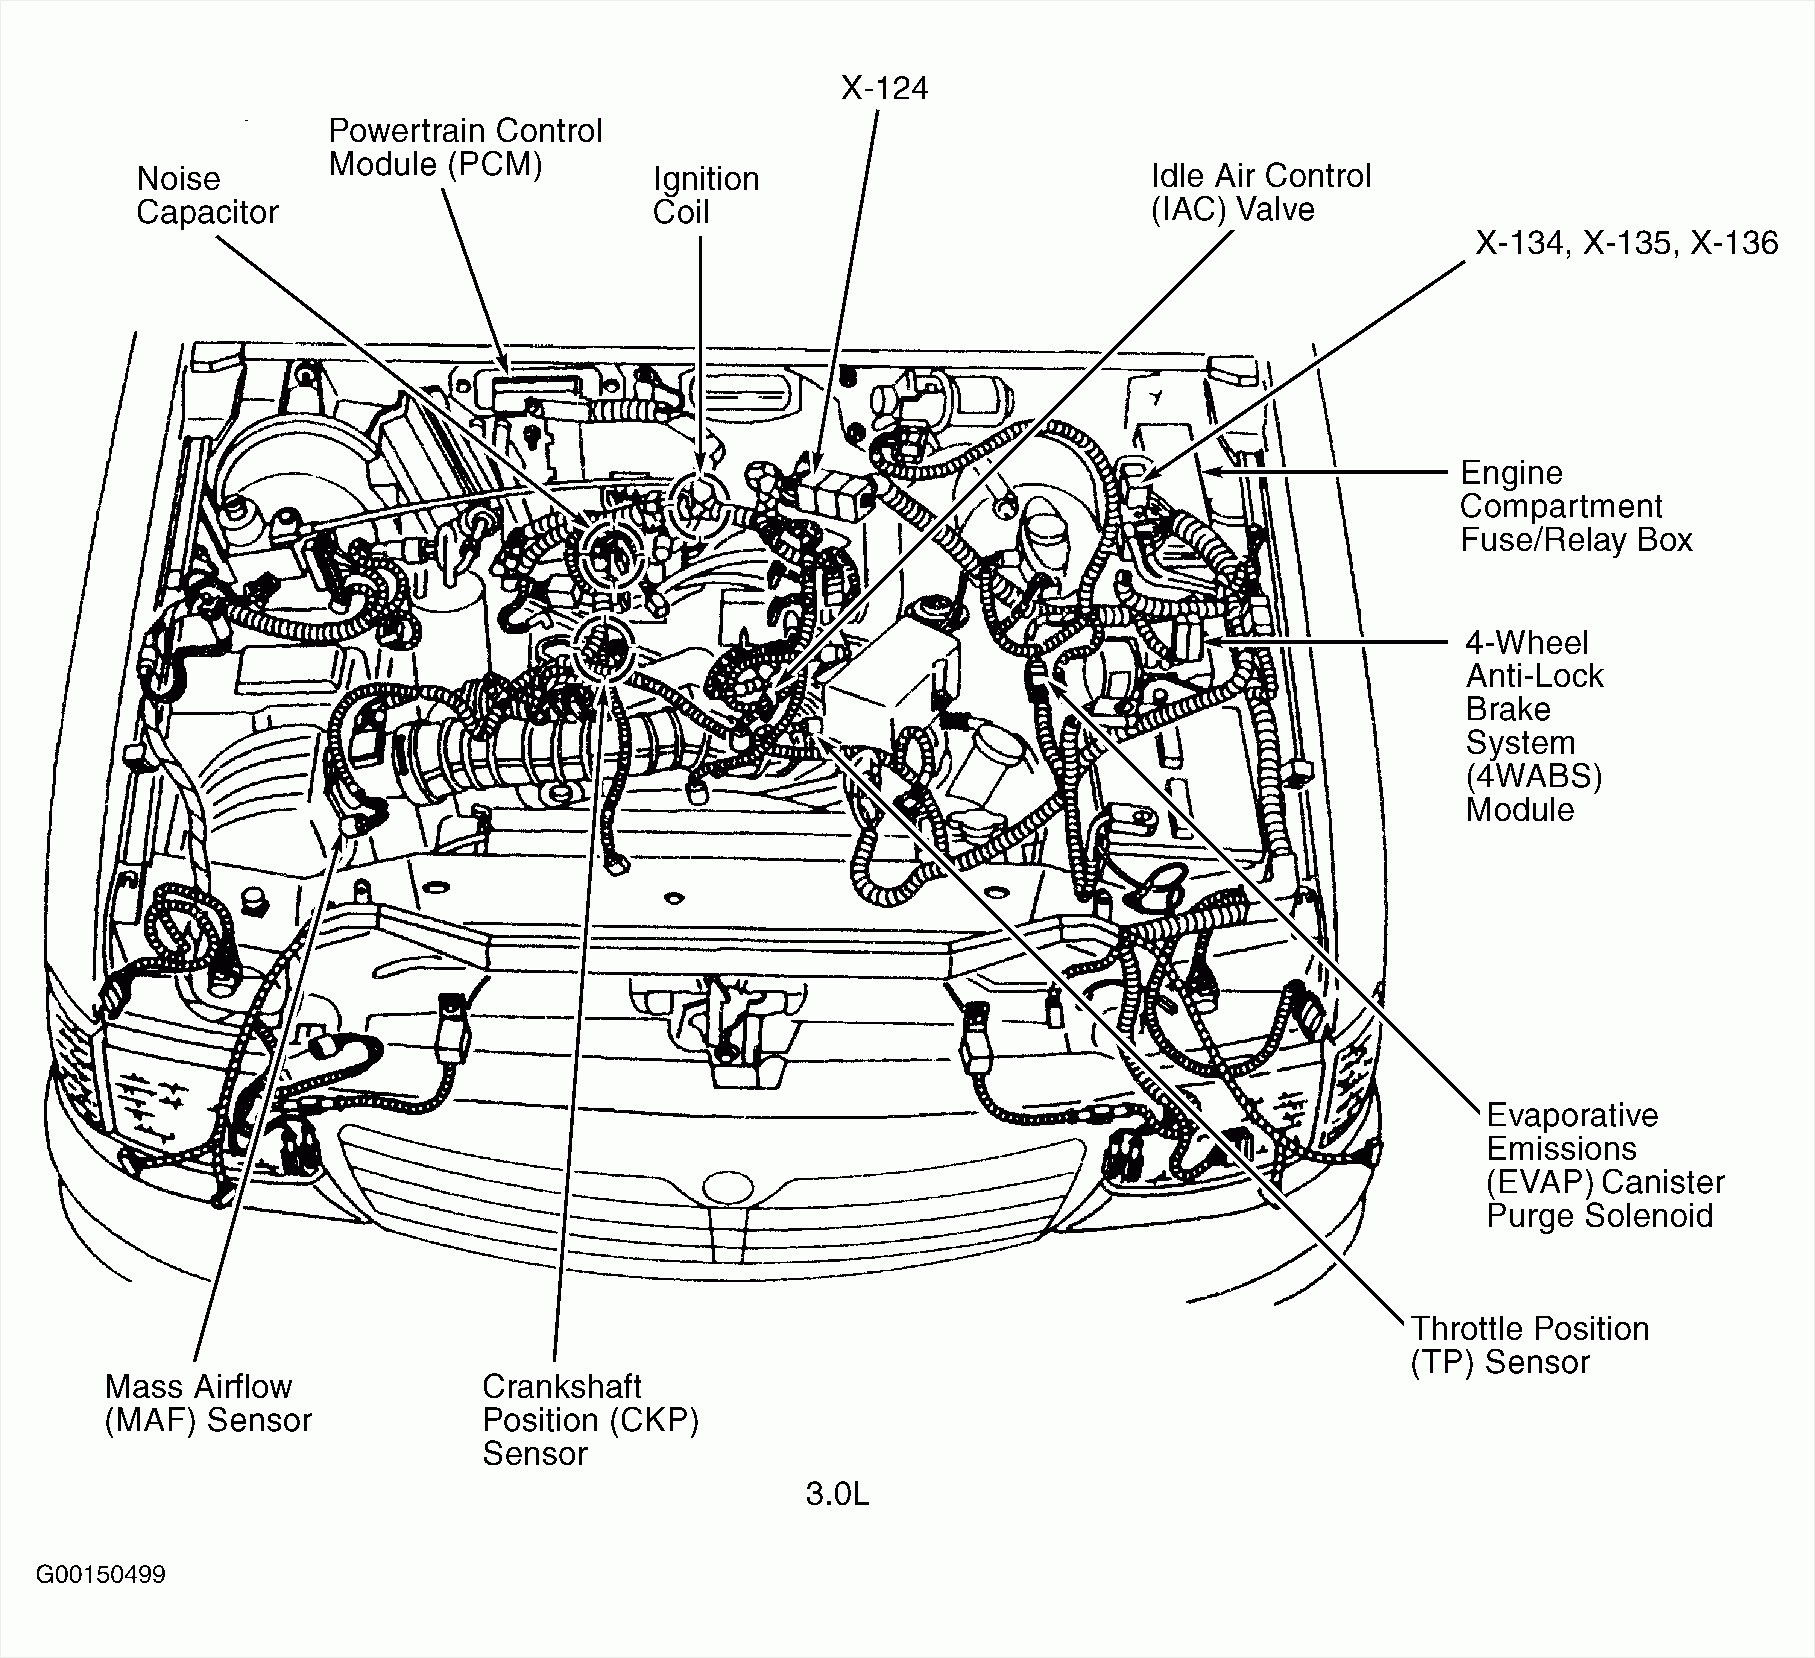 2008 toyota tacoma engine diagram - wiring diagram law-upgrade -  law-upgrade.agriturismoduemadonne.it  agriturismoduemadonne.it